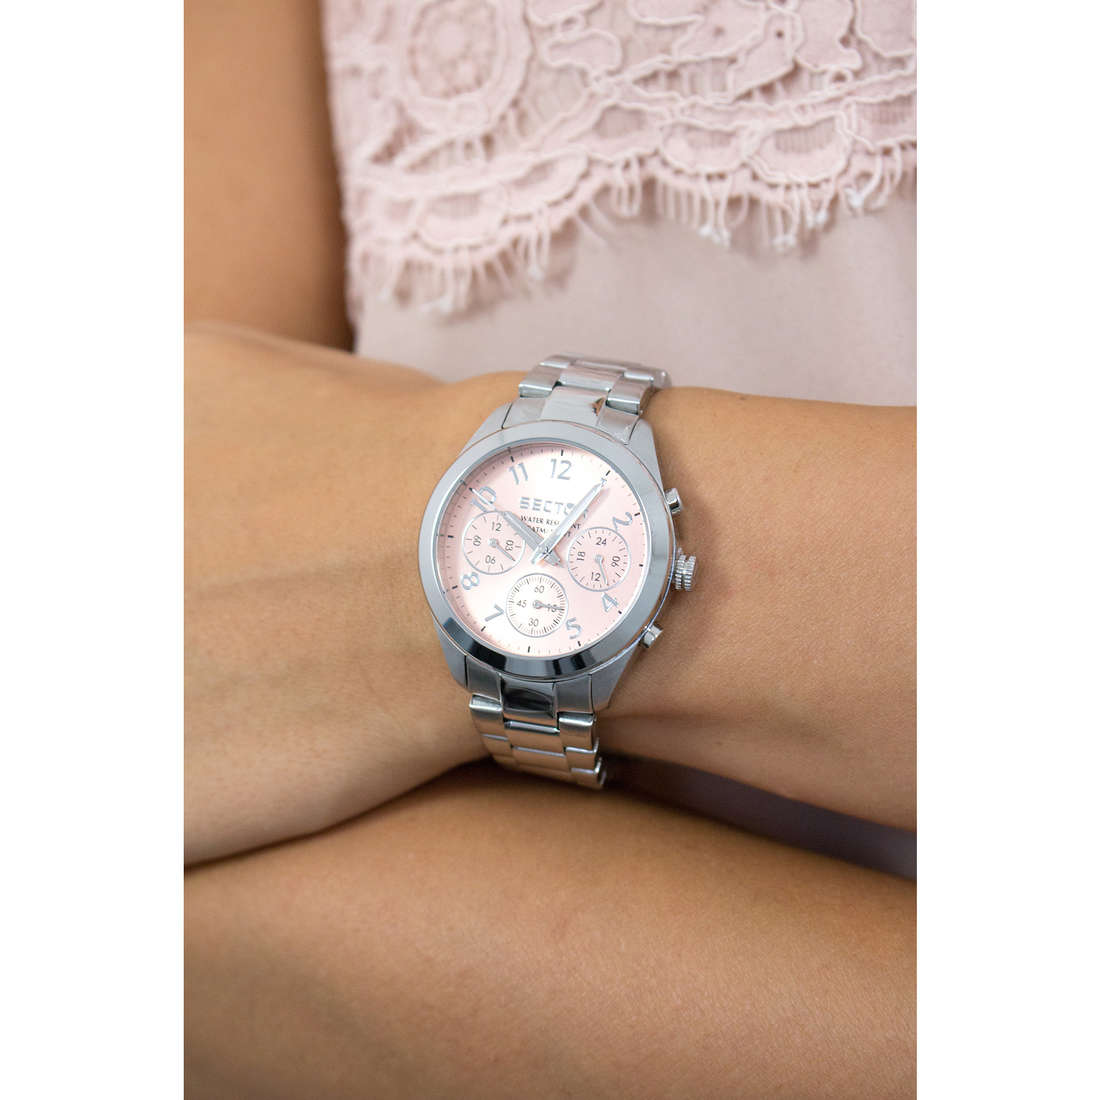 Sector chronographes 120 femme R3253588503 photo wearing